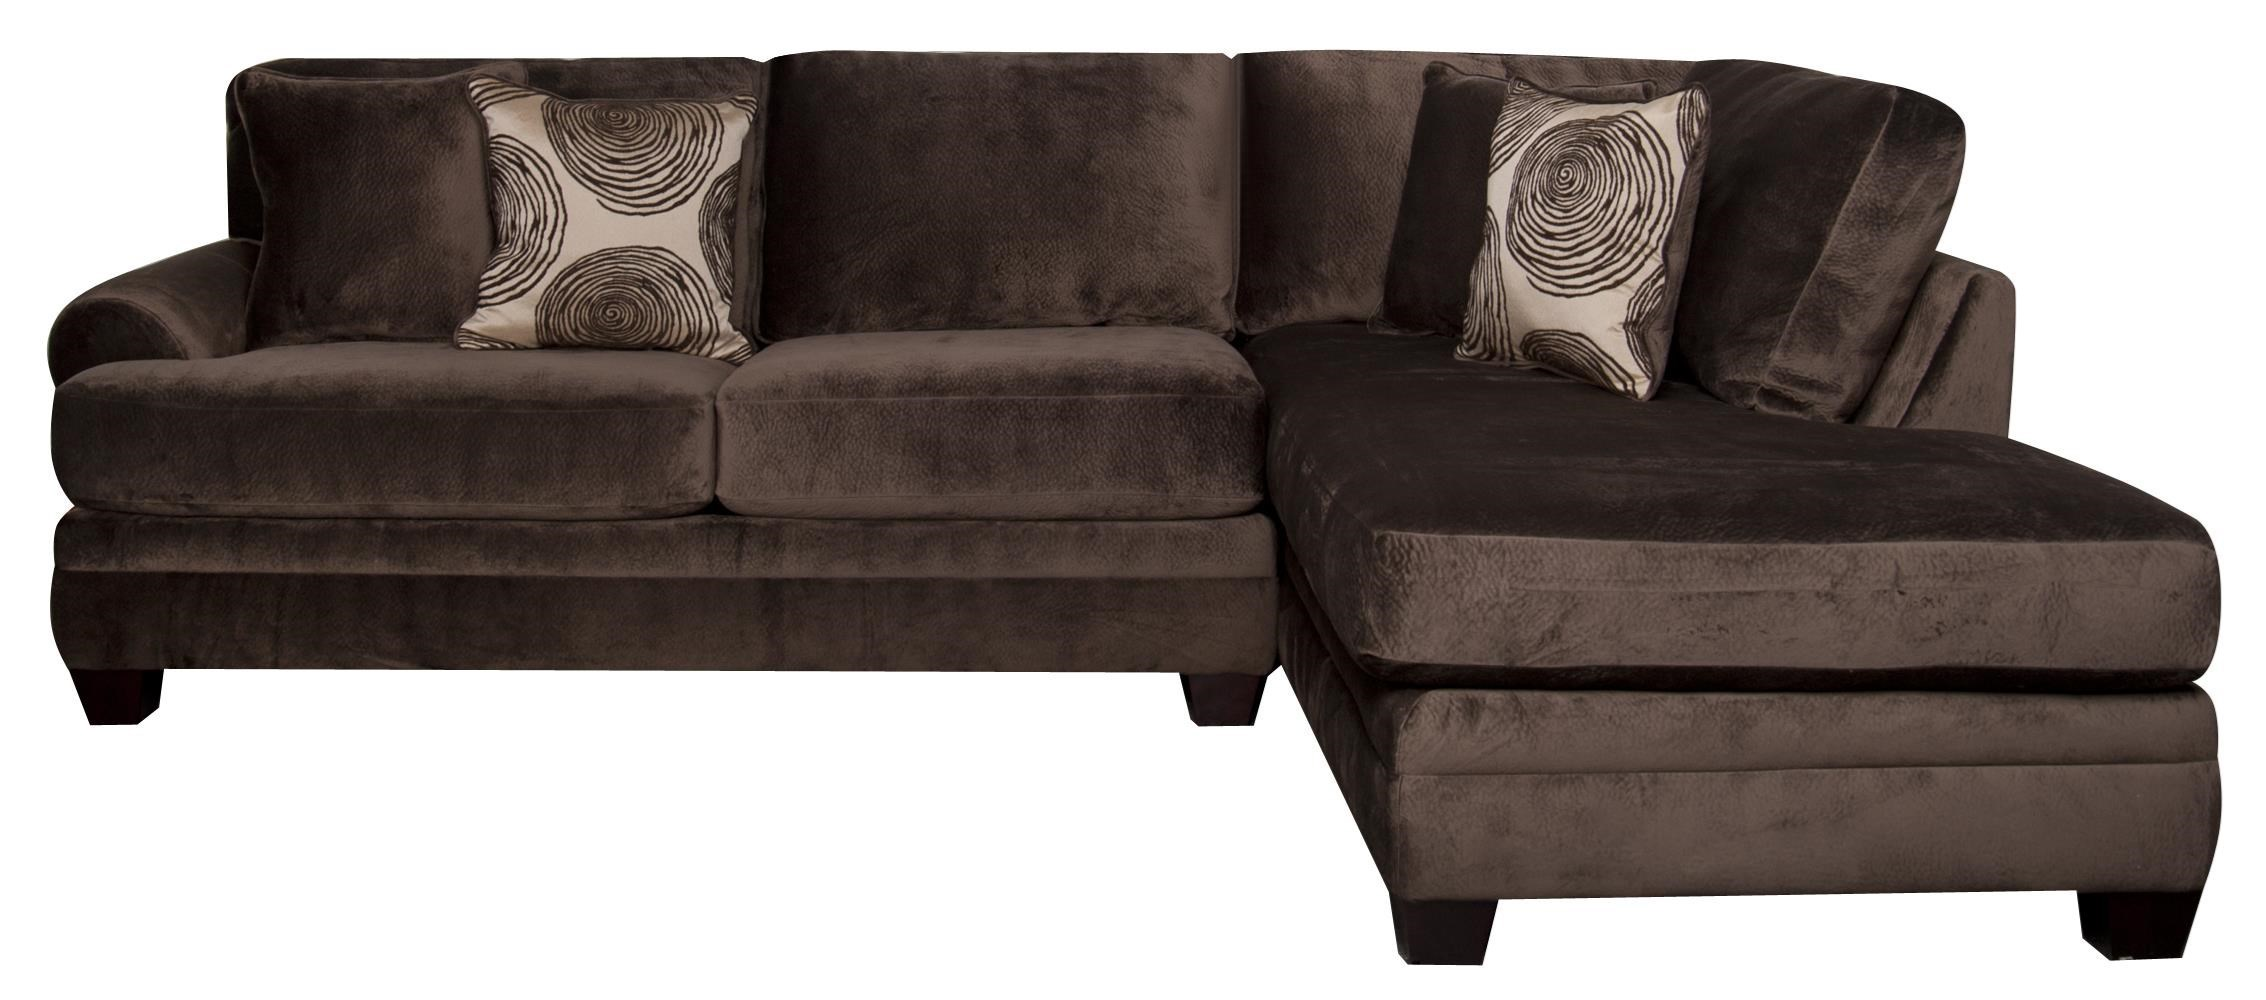 sc 1 st  Morris Furniture : 2 piece sectional sofa - Sectionals, Sofas & Couches